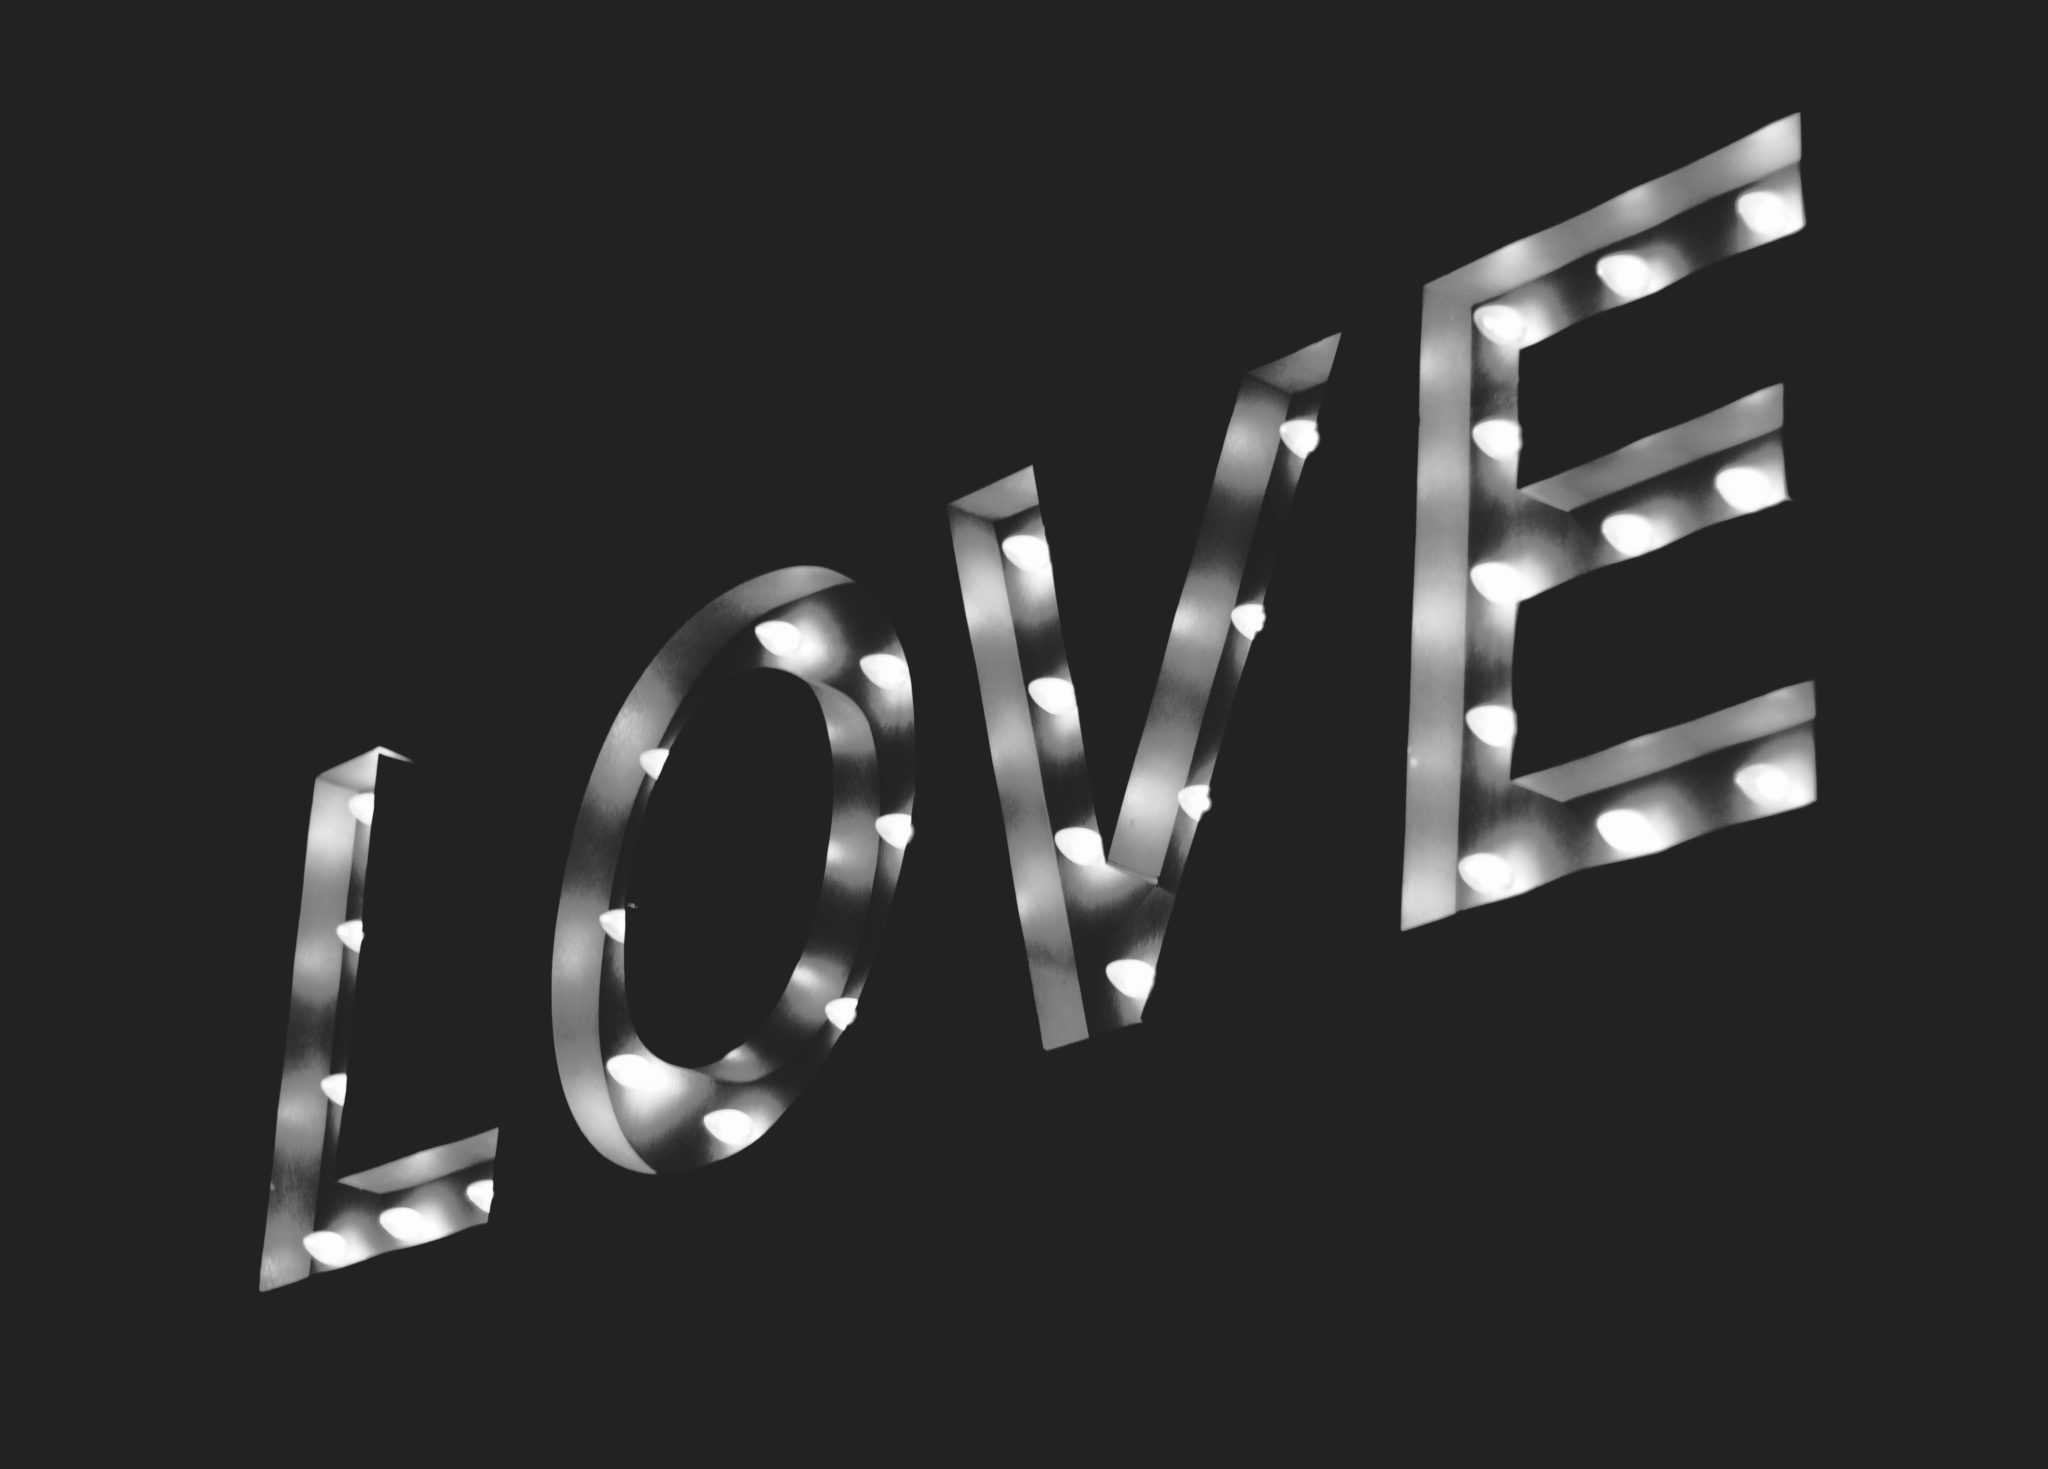 Love in Lights - Photo by Nadine Shaabana on Unsplash